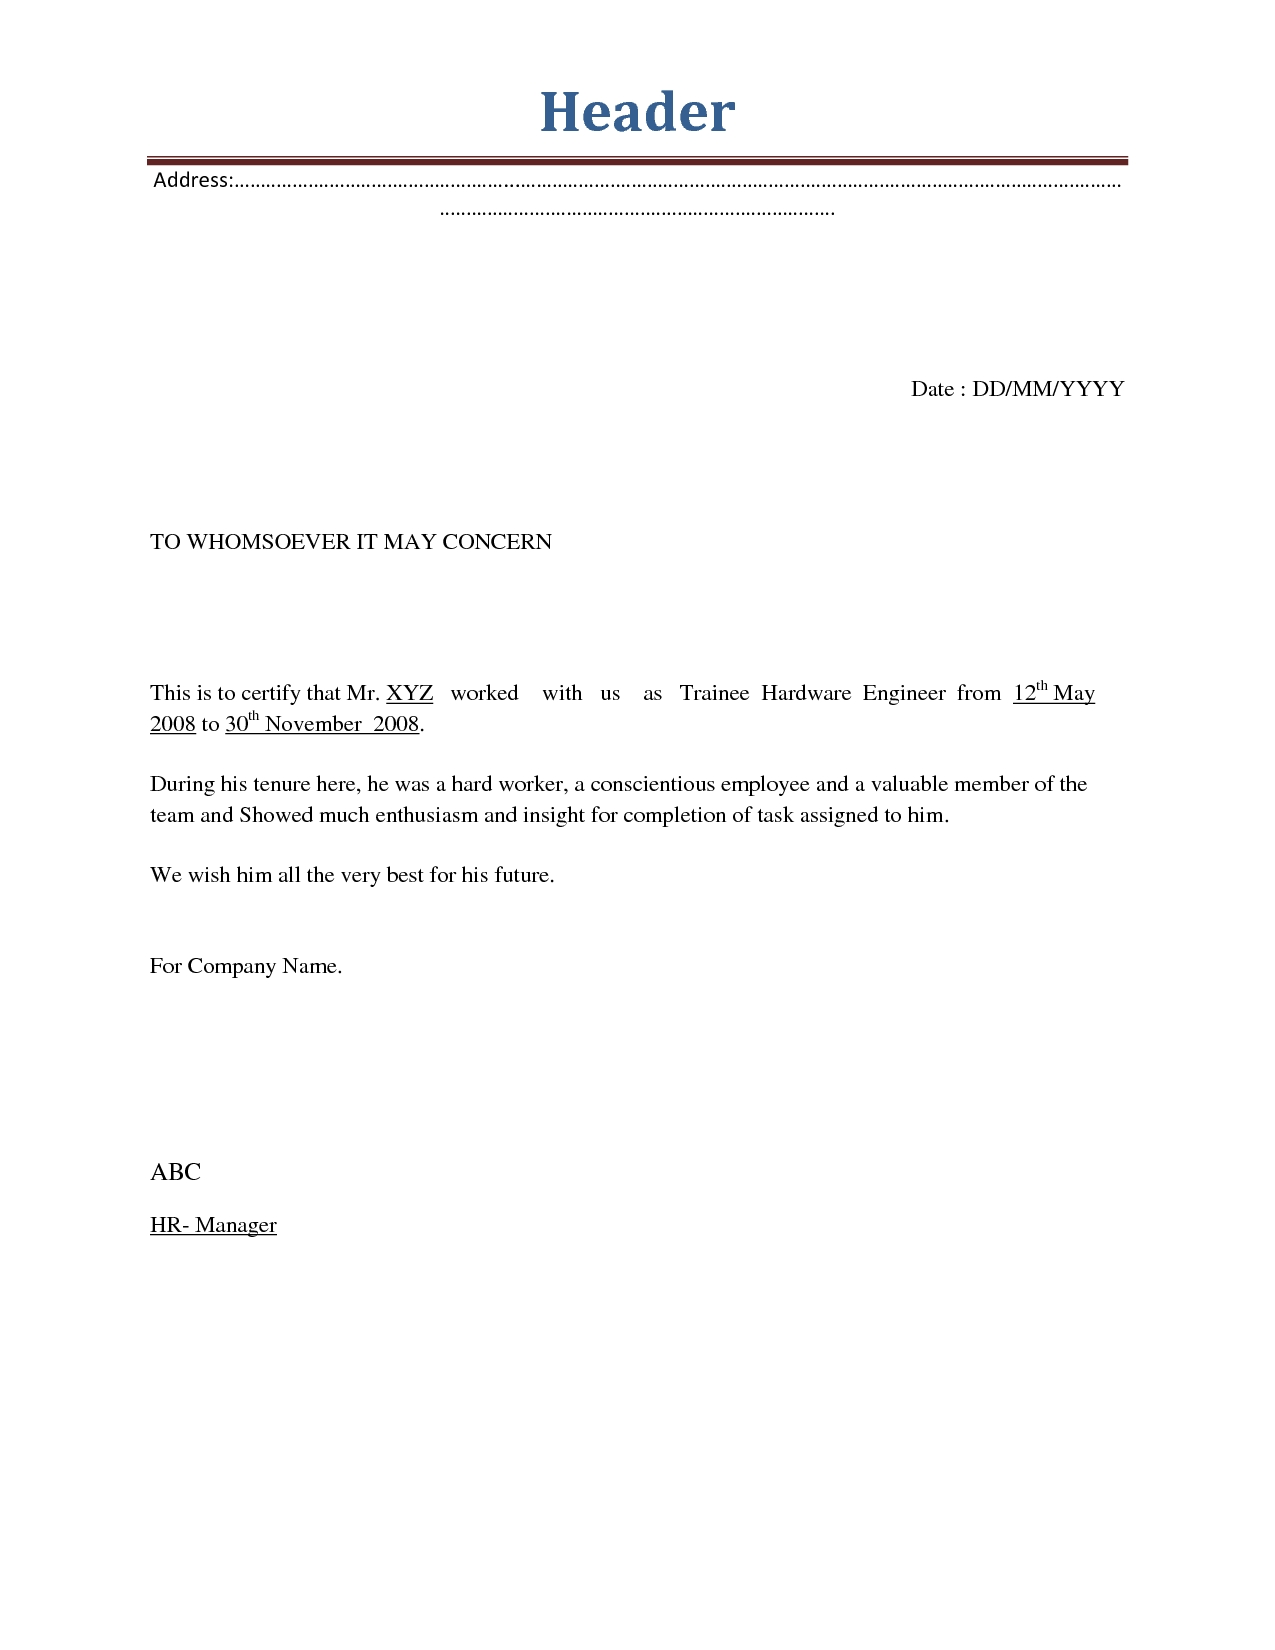 Employment Termination Letters Samples